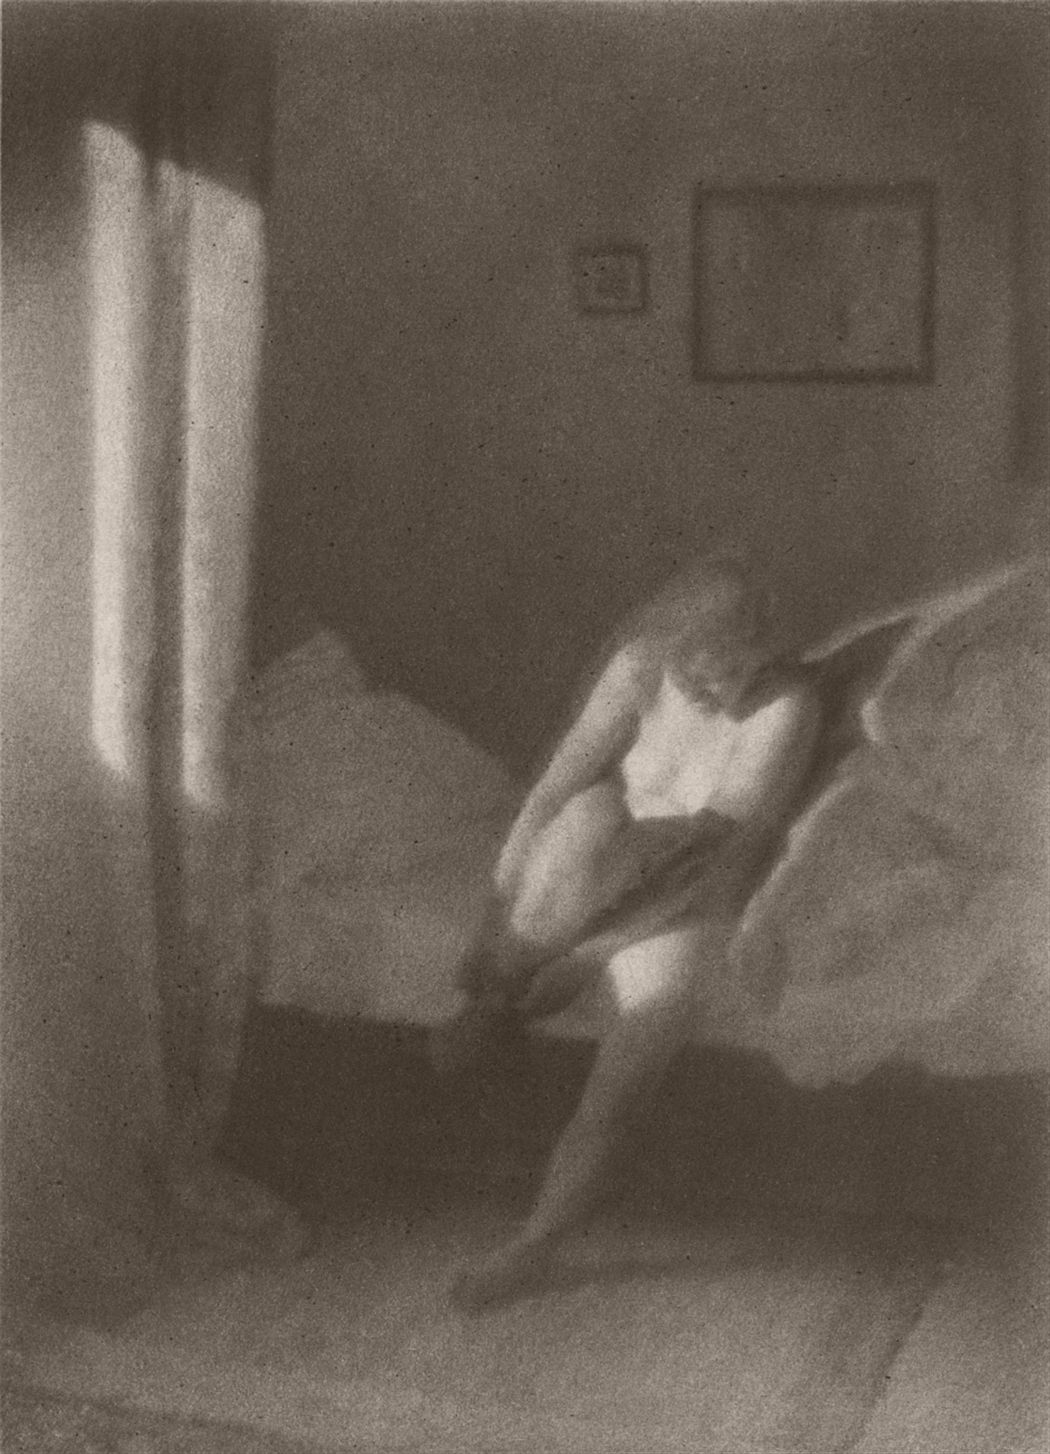 Heinrich Kühn, Nude in the morning sunlight, c. 1920